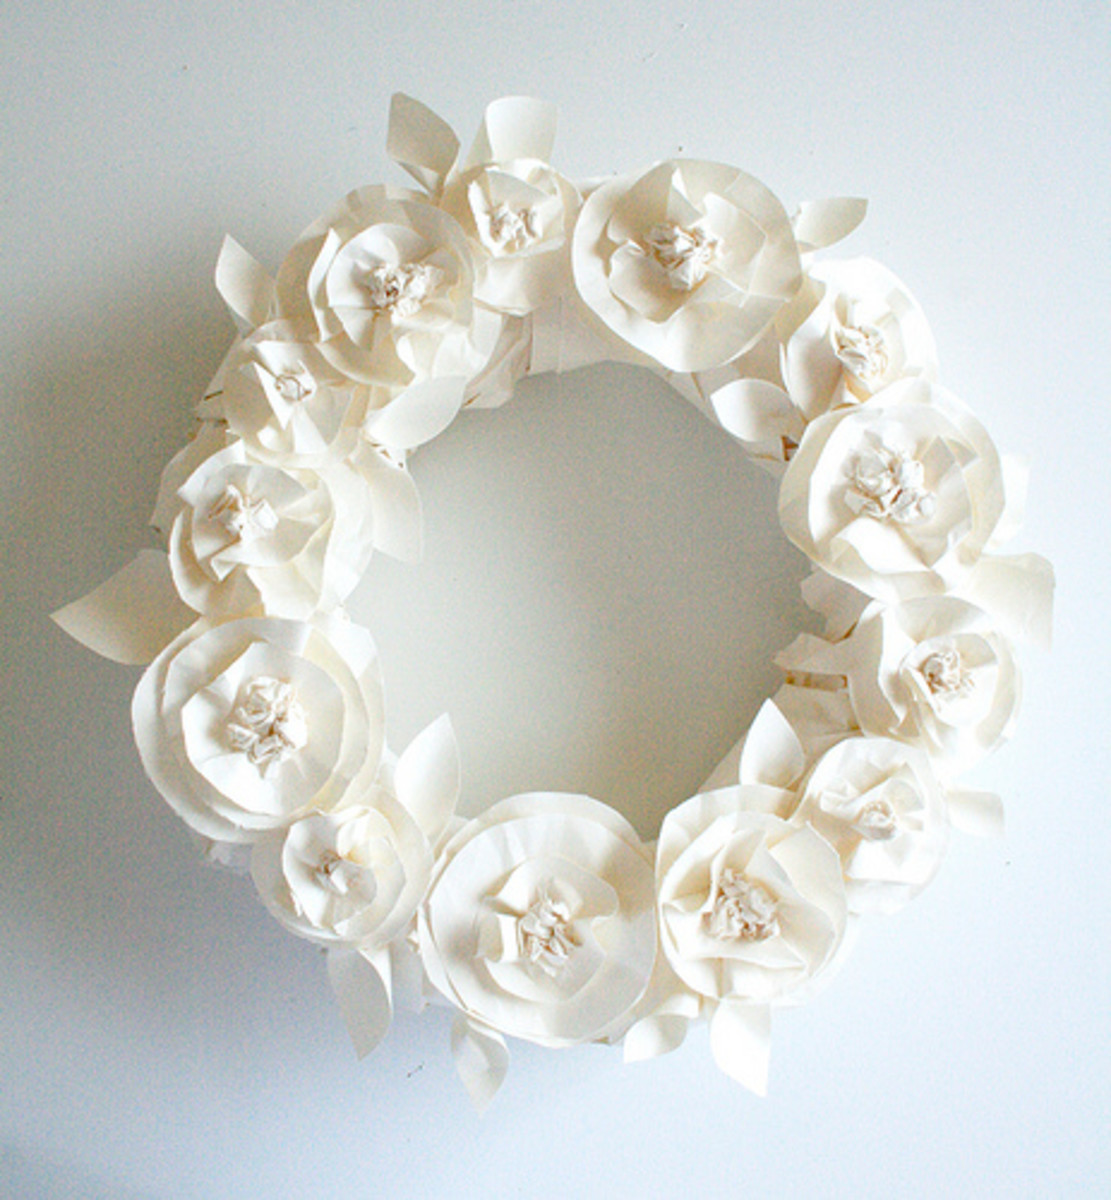 07 Butcher Paper Flower Wreath Alisa Burke.jpg